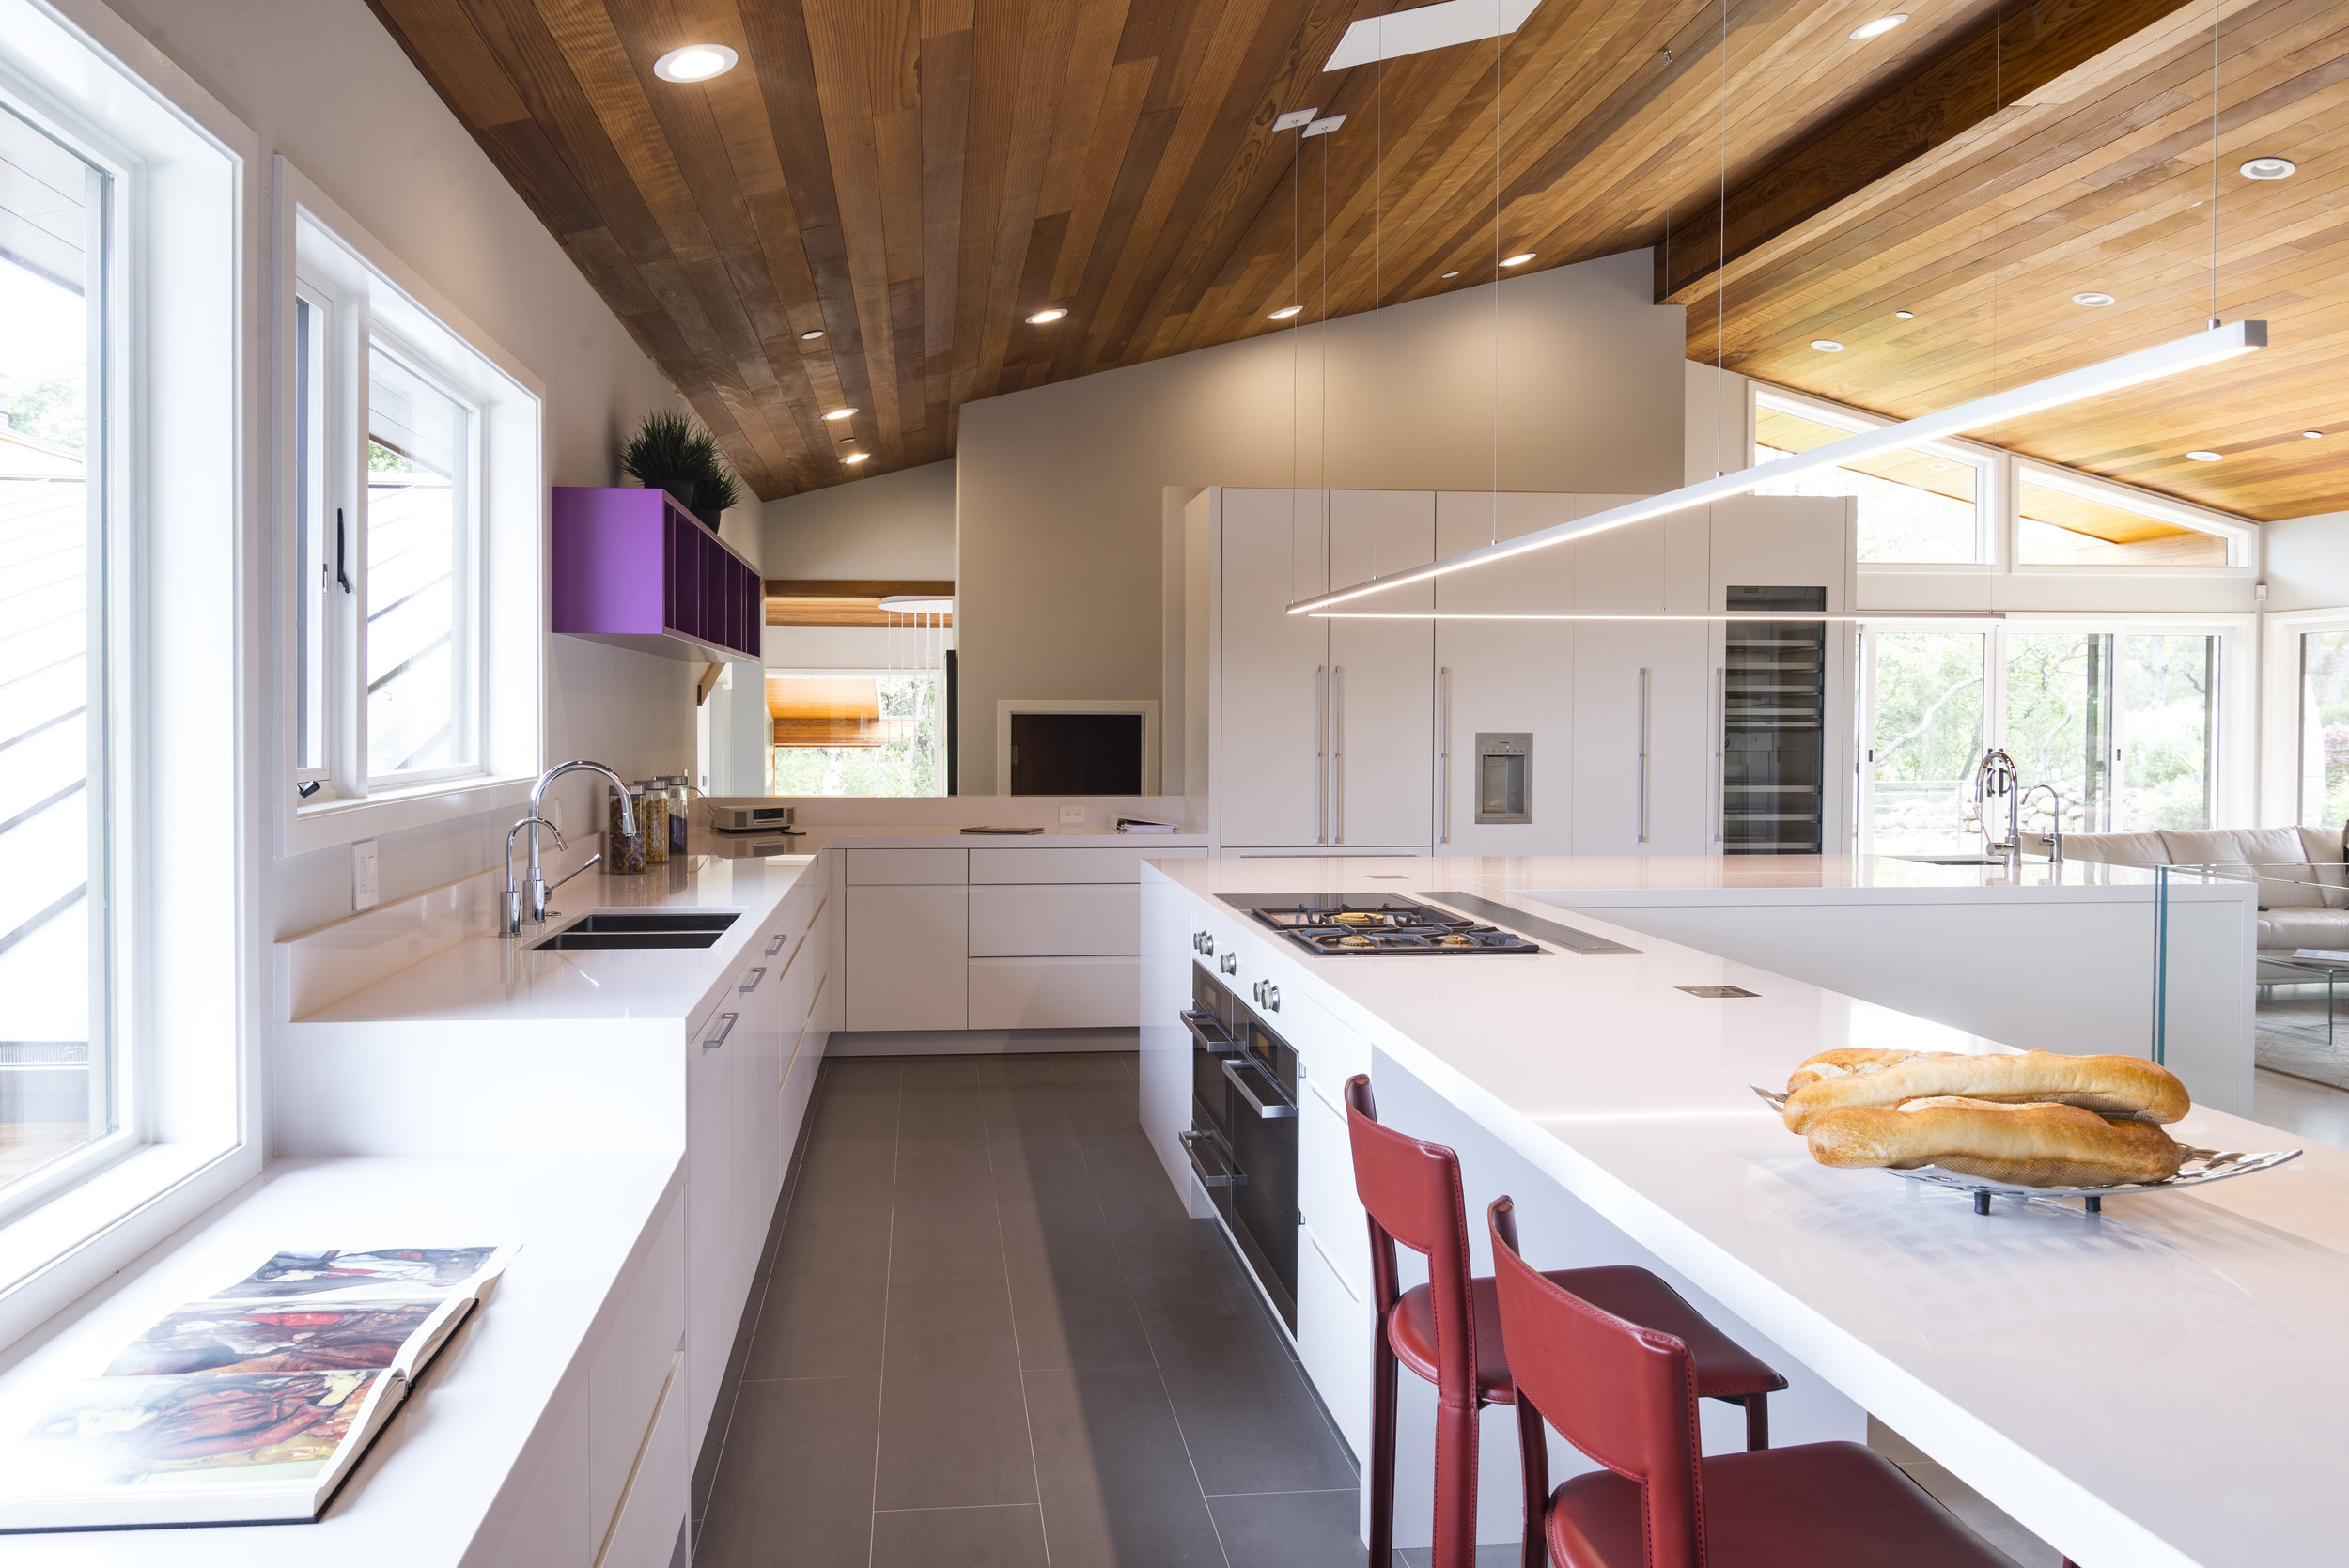 Due to the ceiling height, It was a challenge to light the kitchen countertop properly. We resolve it with a custom-made linear LED fixture that provides regular light to all the covers all the island.